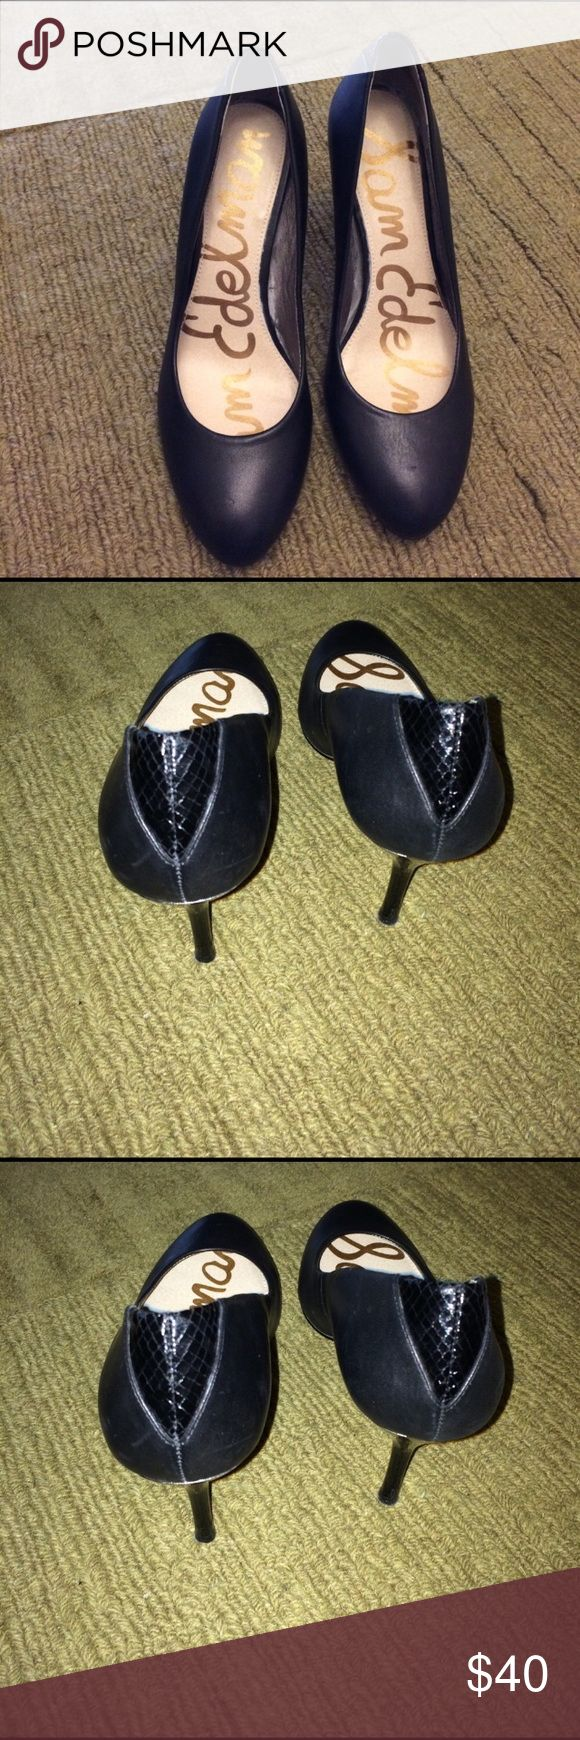 Sam Edelman Heels Sam Edelman leather, snake skin shoes with metal around the heel. Heel is snake skin. The sliver metal is right above the heel. A minor scratch one shoes. Not very noticeable. Shoes 👠 in very good condition as shown. Circus by Sam Edelman Shoes Heels